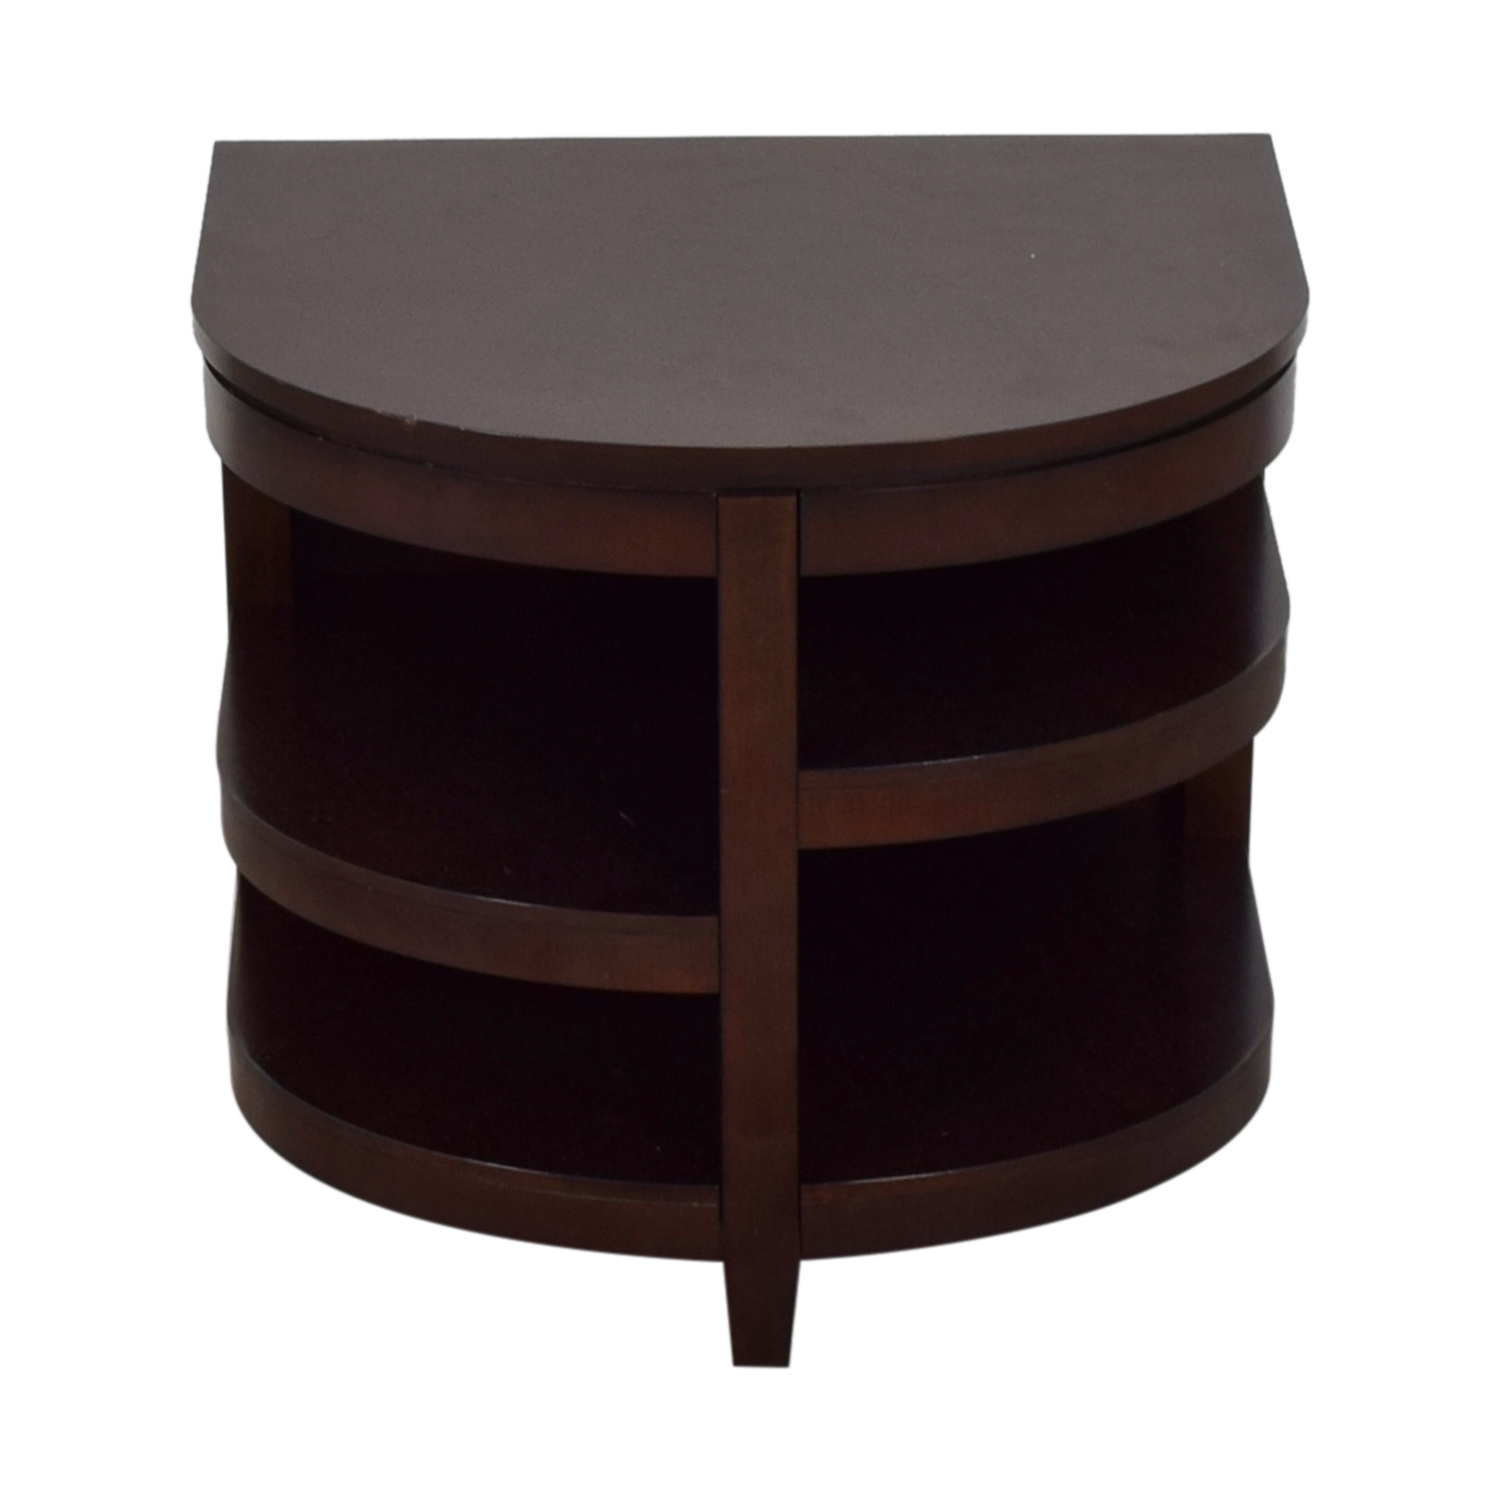 Raymour & Flanigan Raymour & Flanigan Semi Round Shelved End Table dimensions